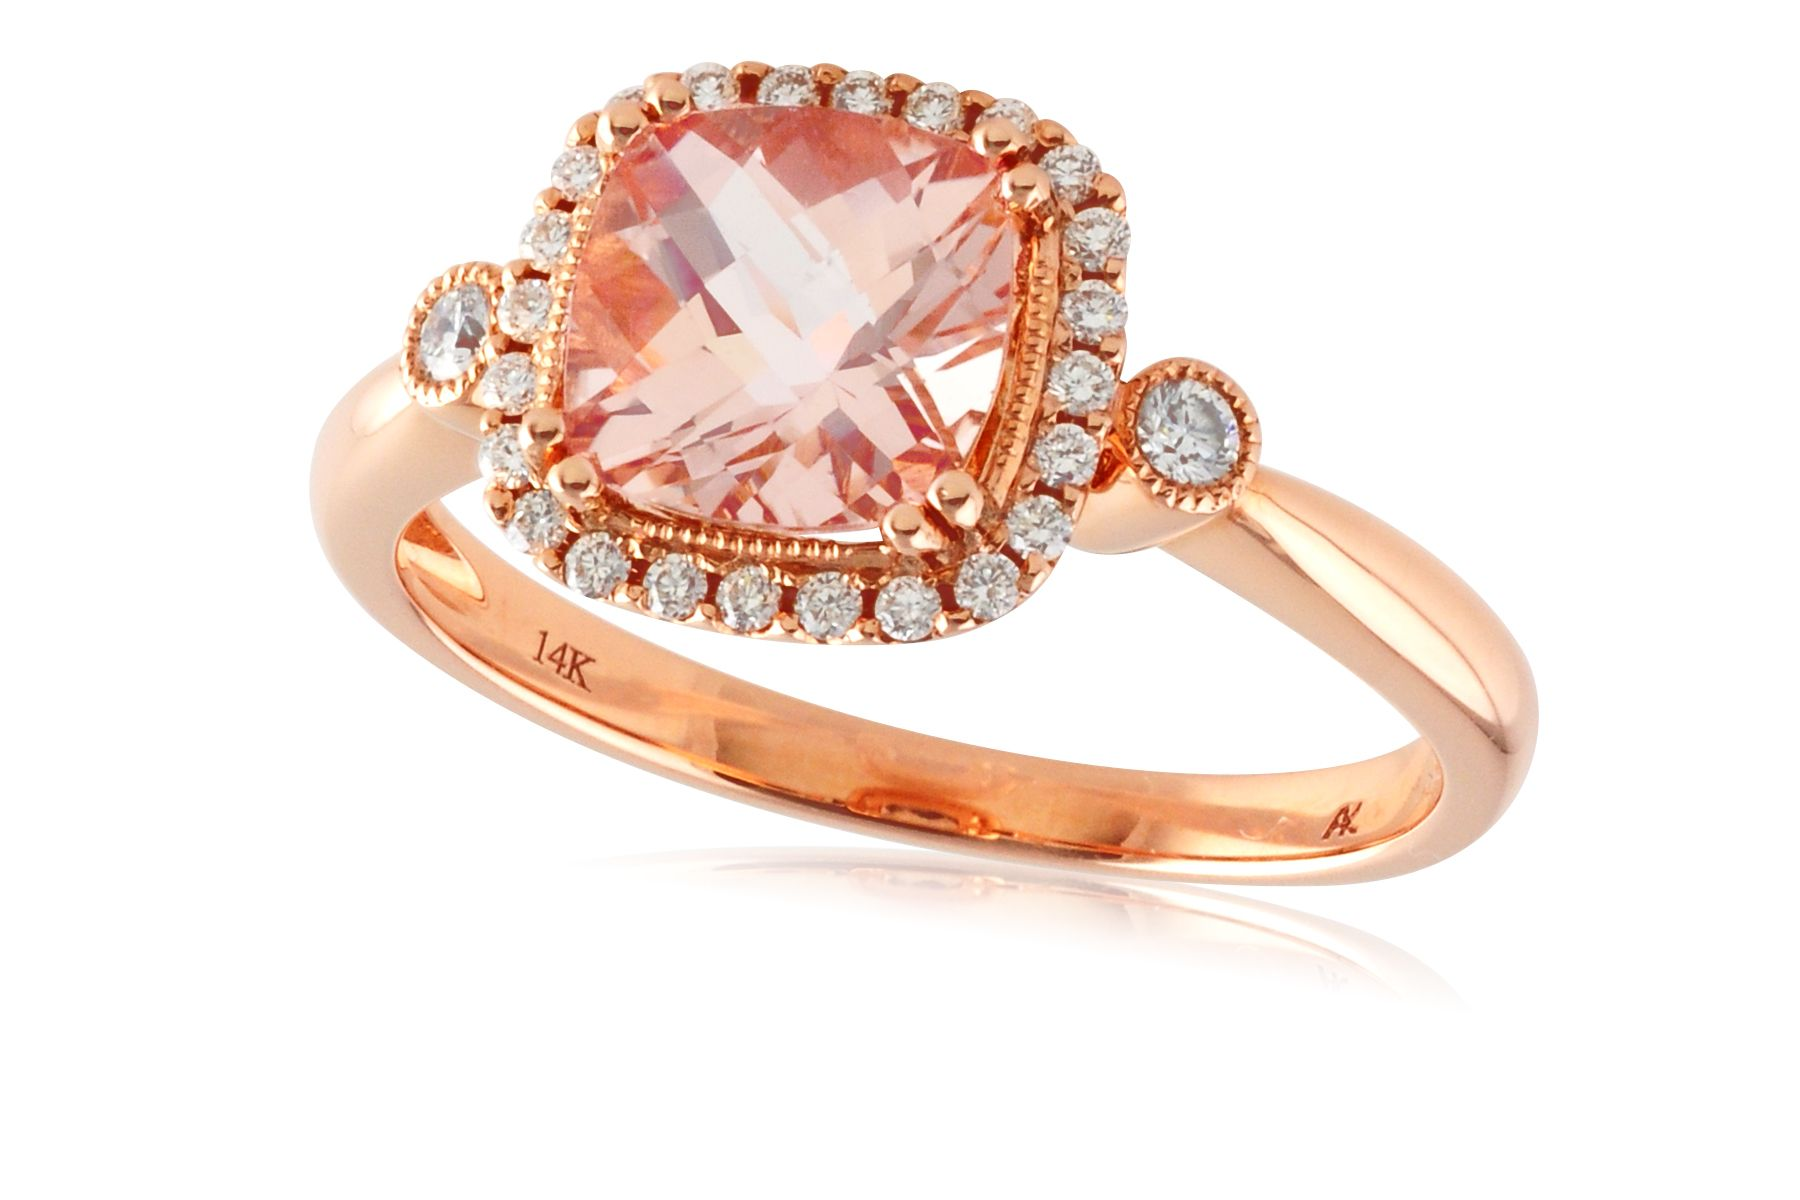 Beautiful Morganite and Diamond Ring set in 14kt Rose Gold by